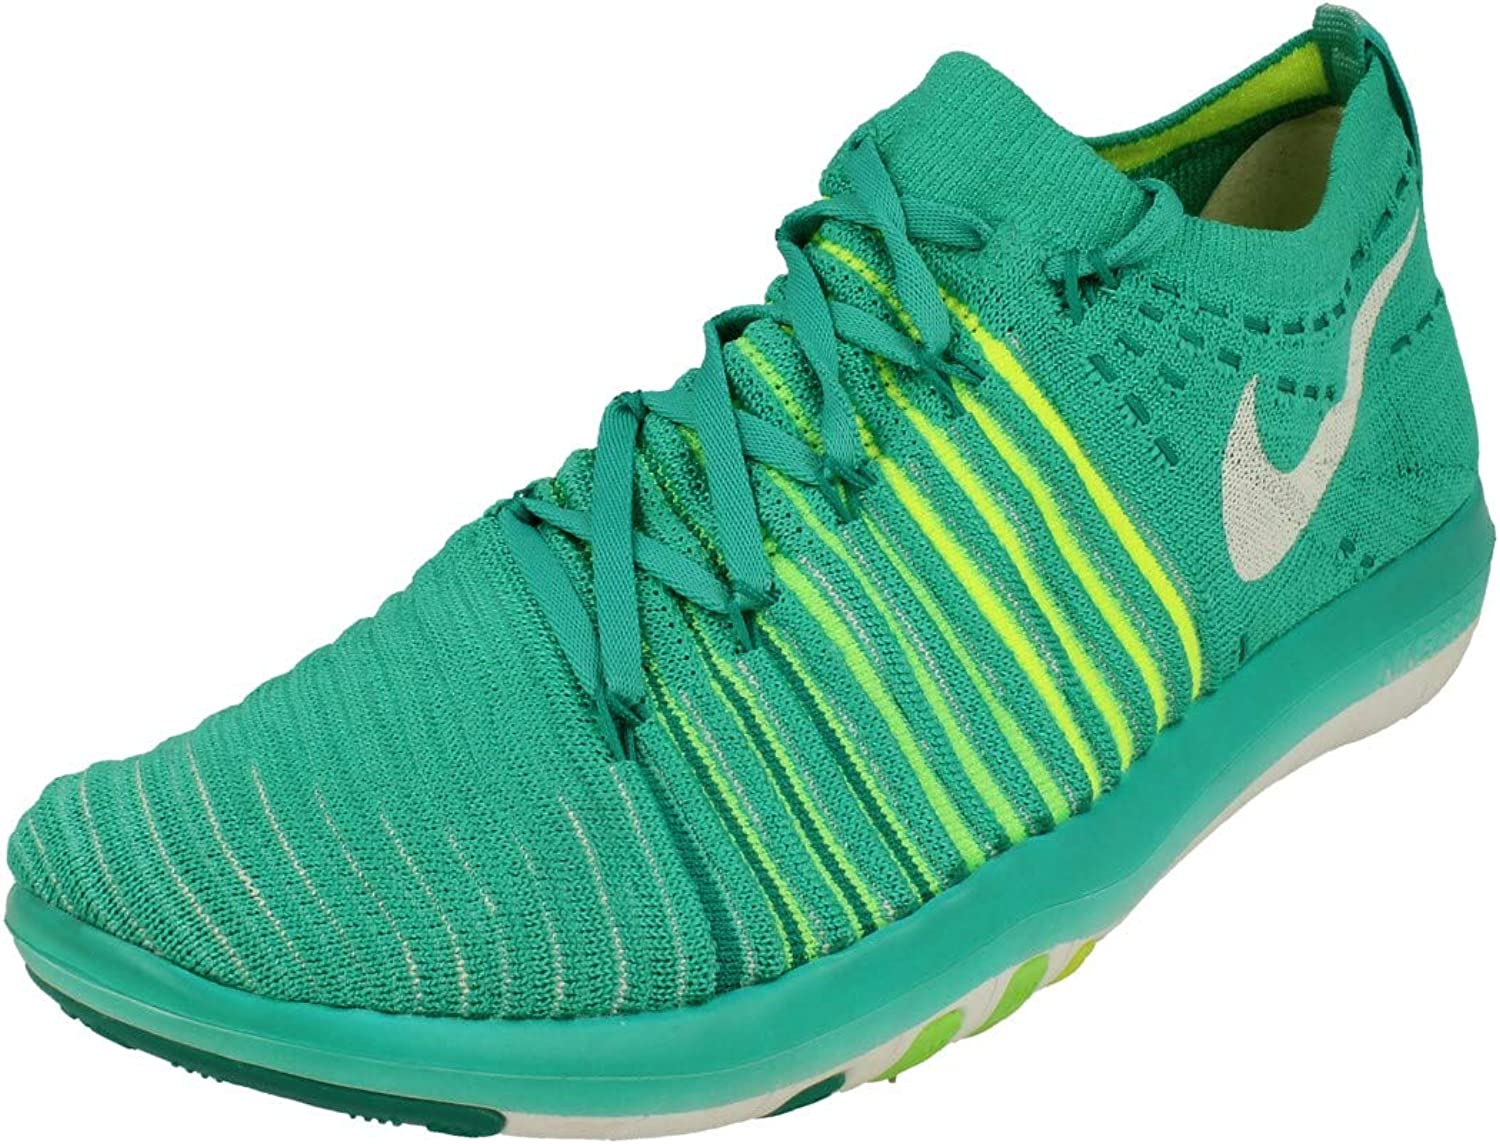 Nike Free Transform Flyknit Womens Running Trainers 833410 Sneakers Shoes US 6.5, Clear Jade White Voltage Green 301